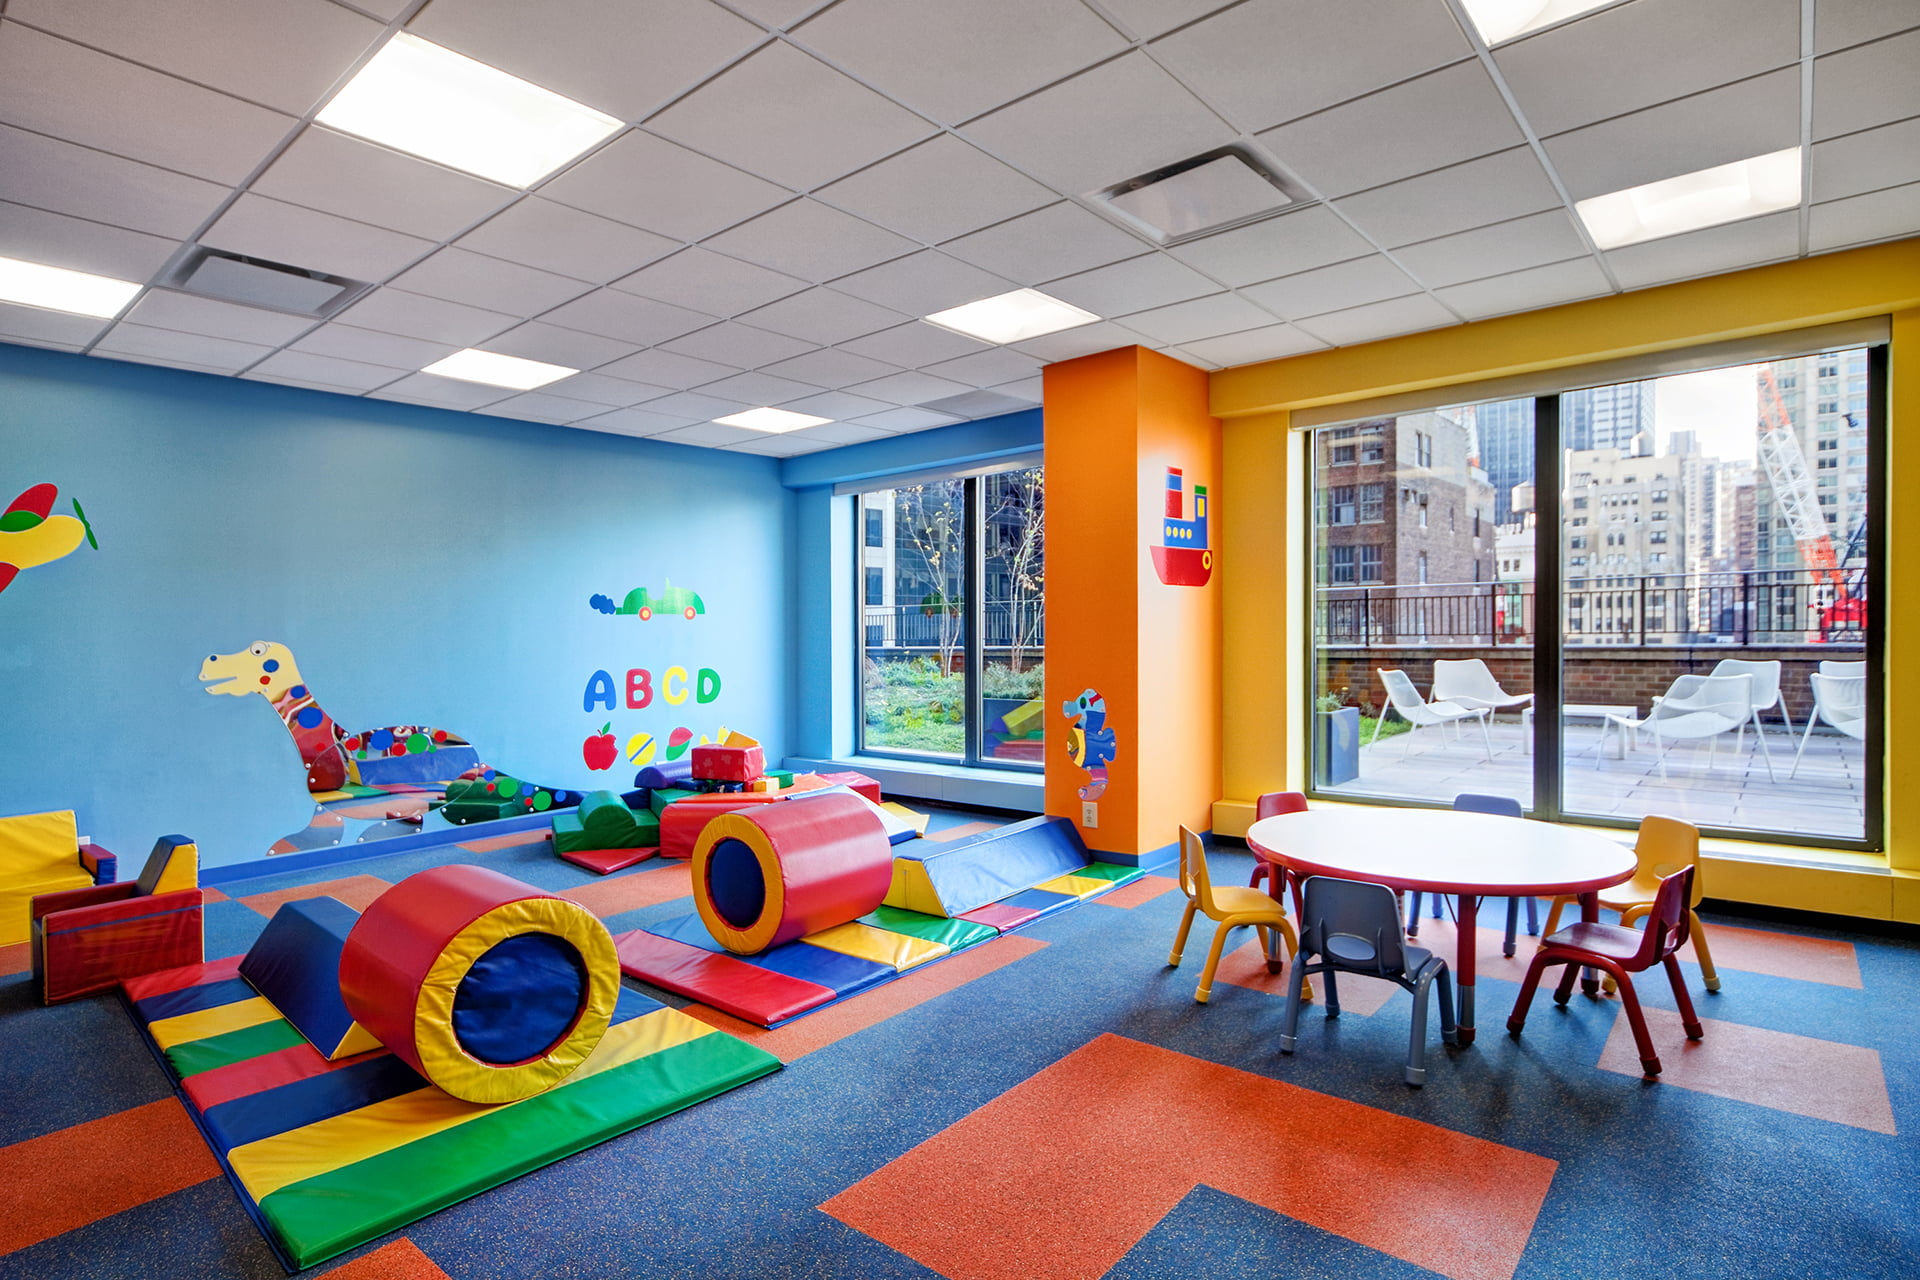 Symphony house children's playroom.